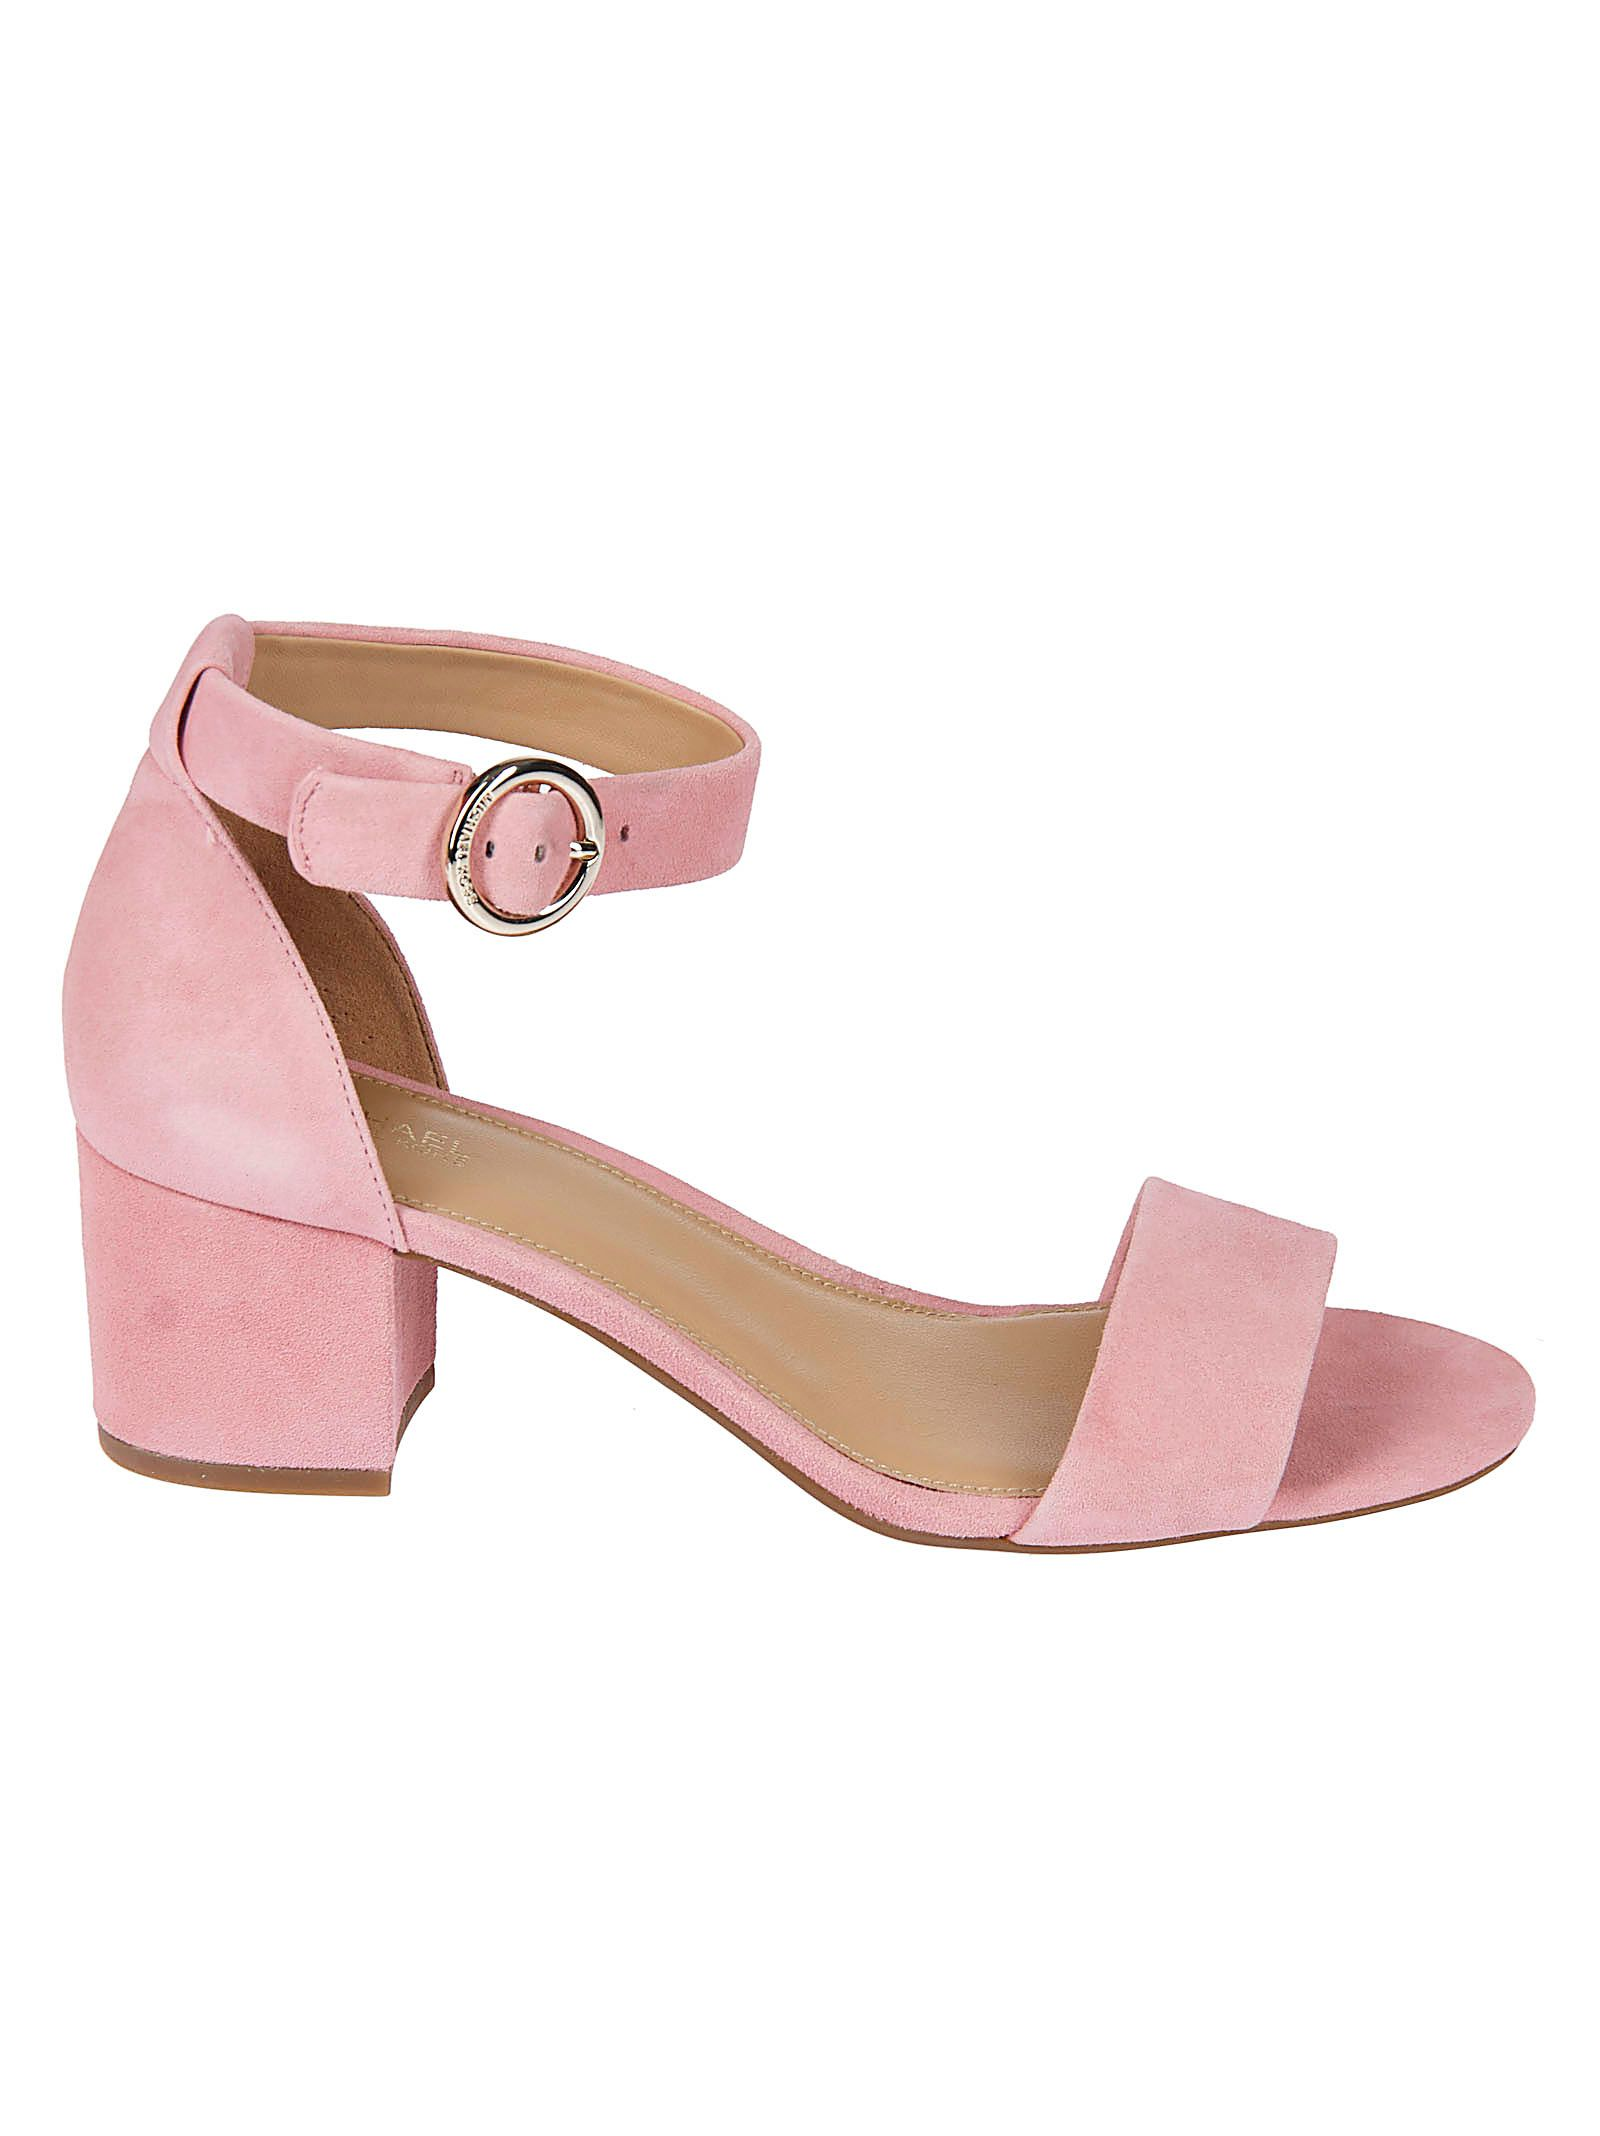 Michael Kors Pink Leather Sandals